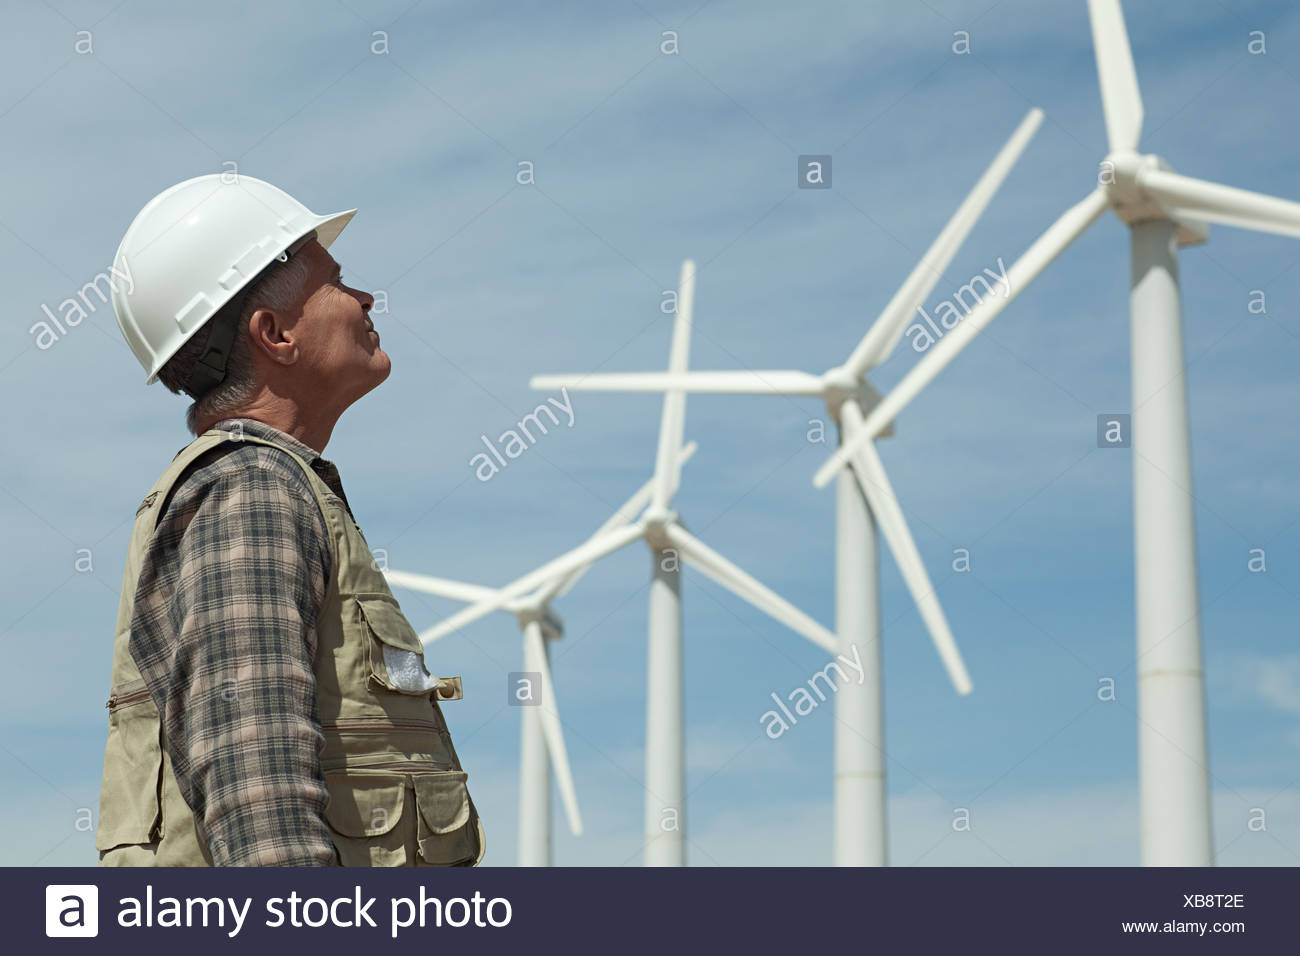 Man in hard hat looking at wind turbines Stock Photo